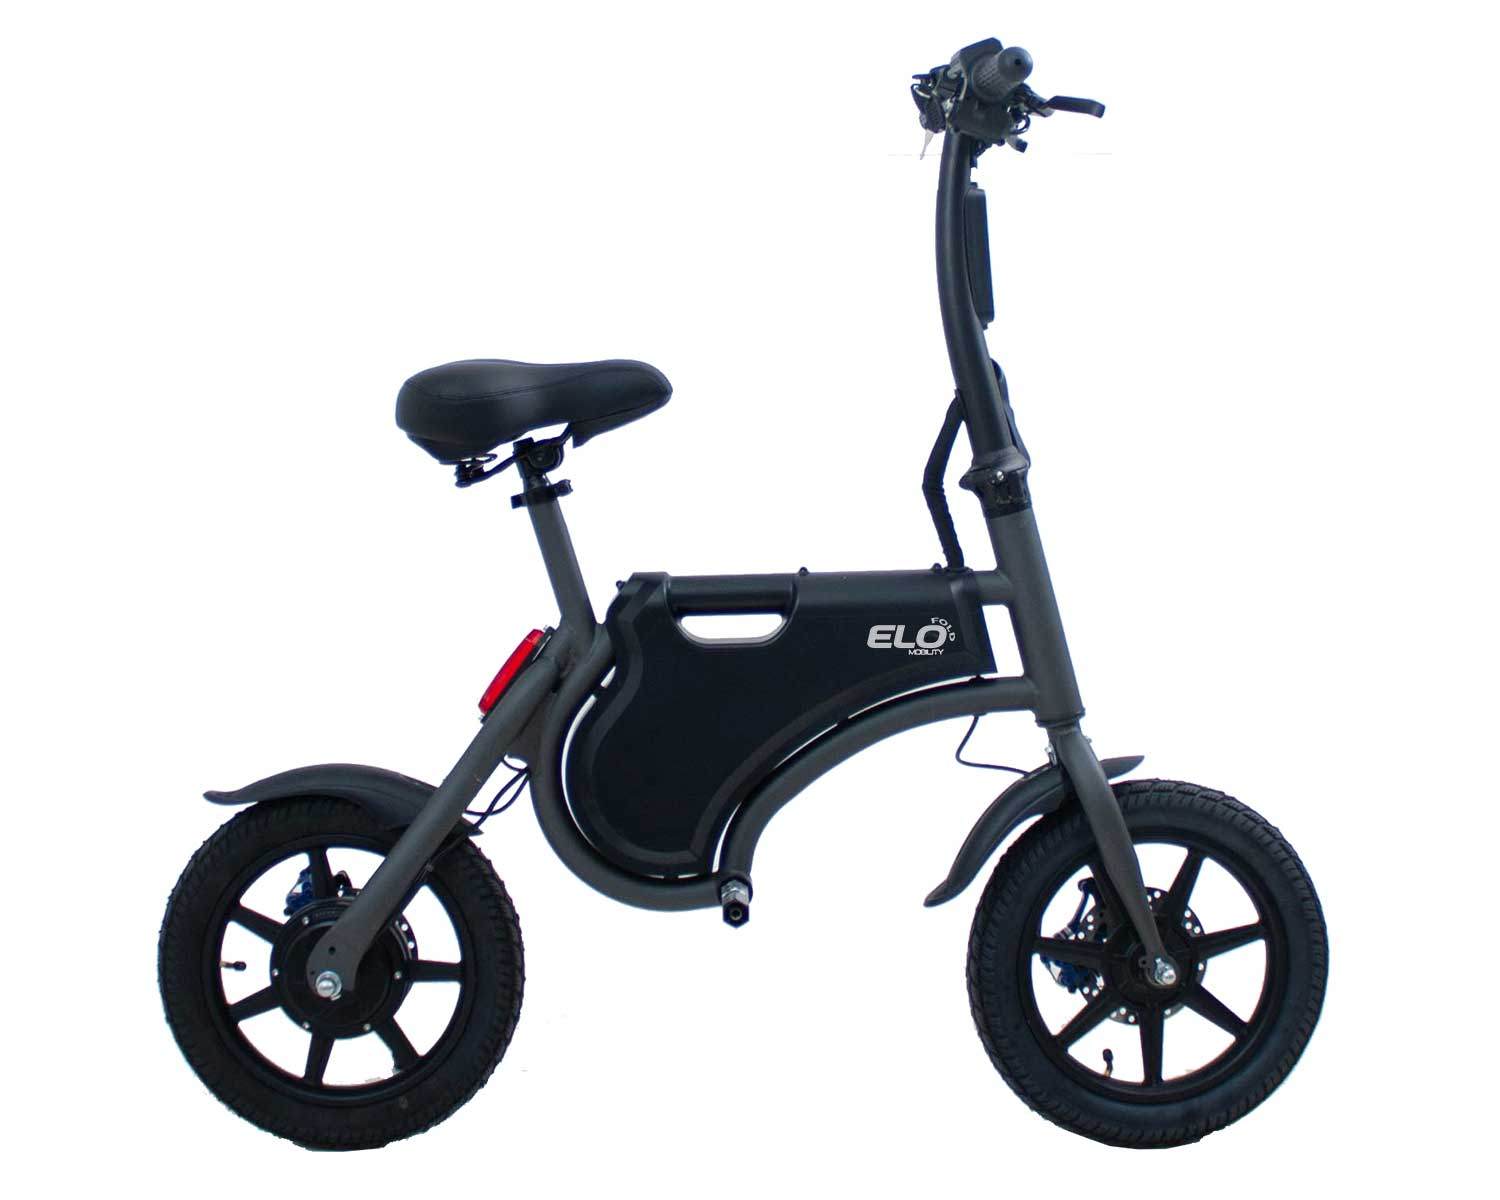 Elscooter Elo Mobility Fold